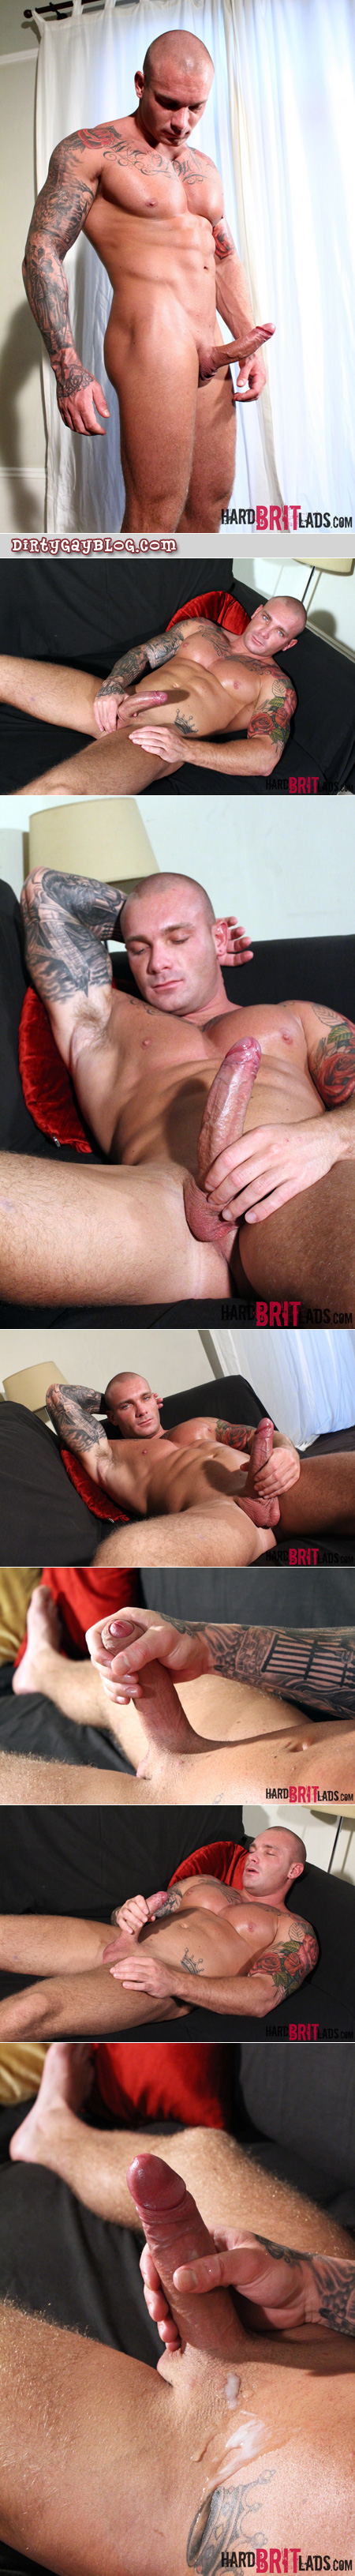 Skinhead bodybuilder jacking off on the couch.